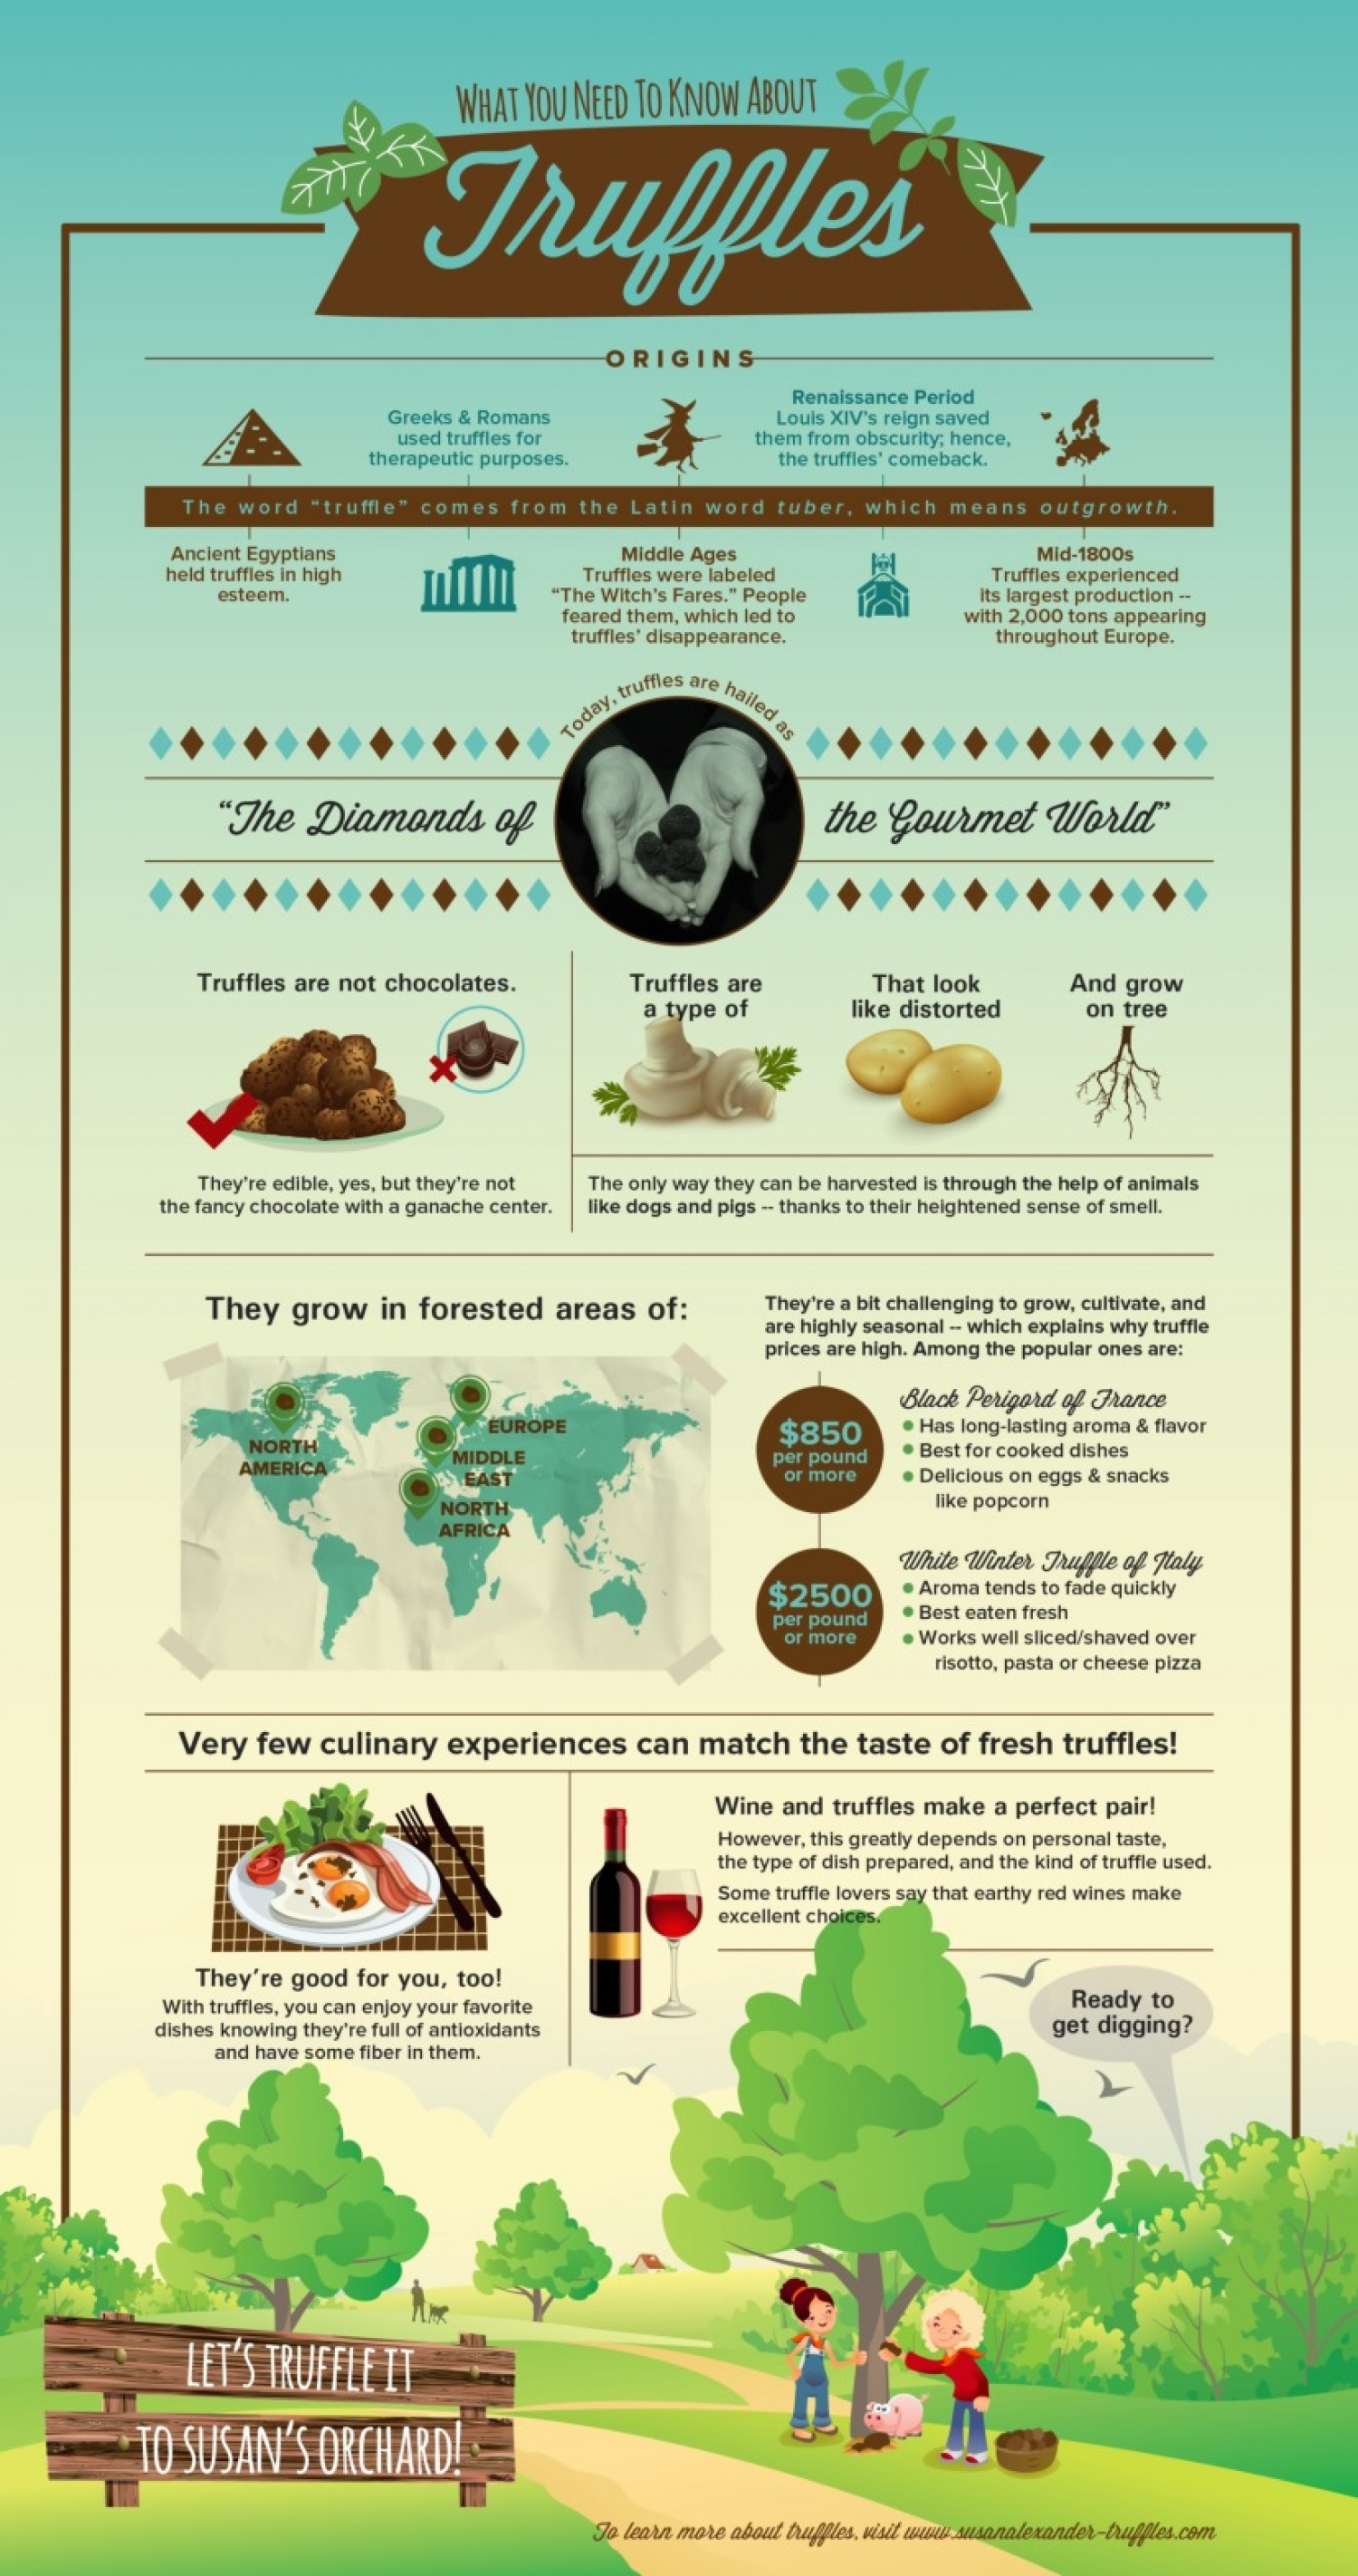 09 what-you-need-to-know-about-truffles_532b51c90d2c2_w1500